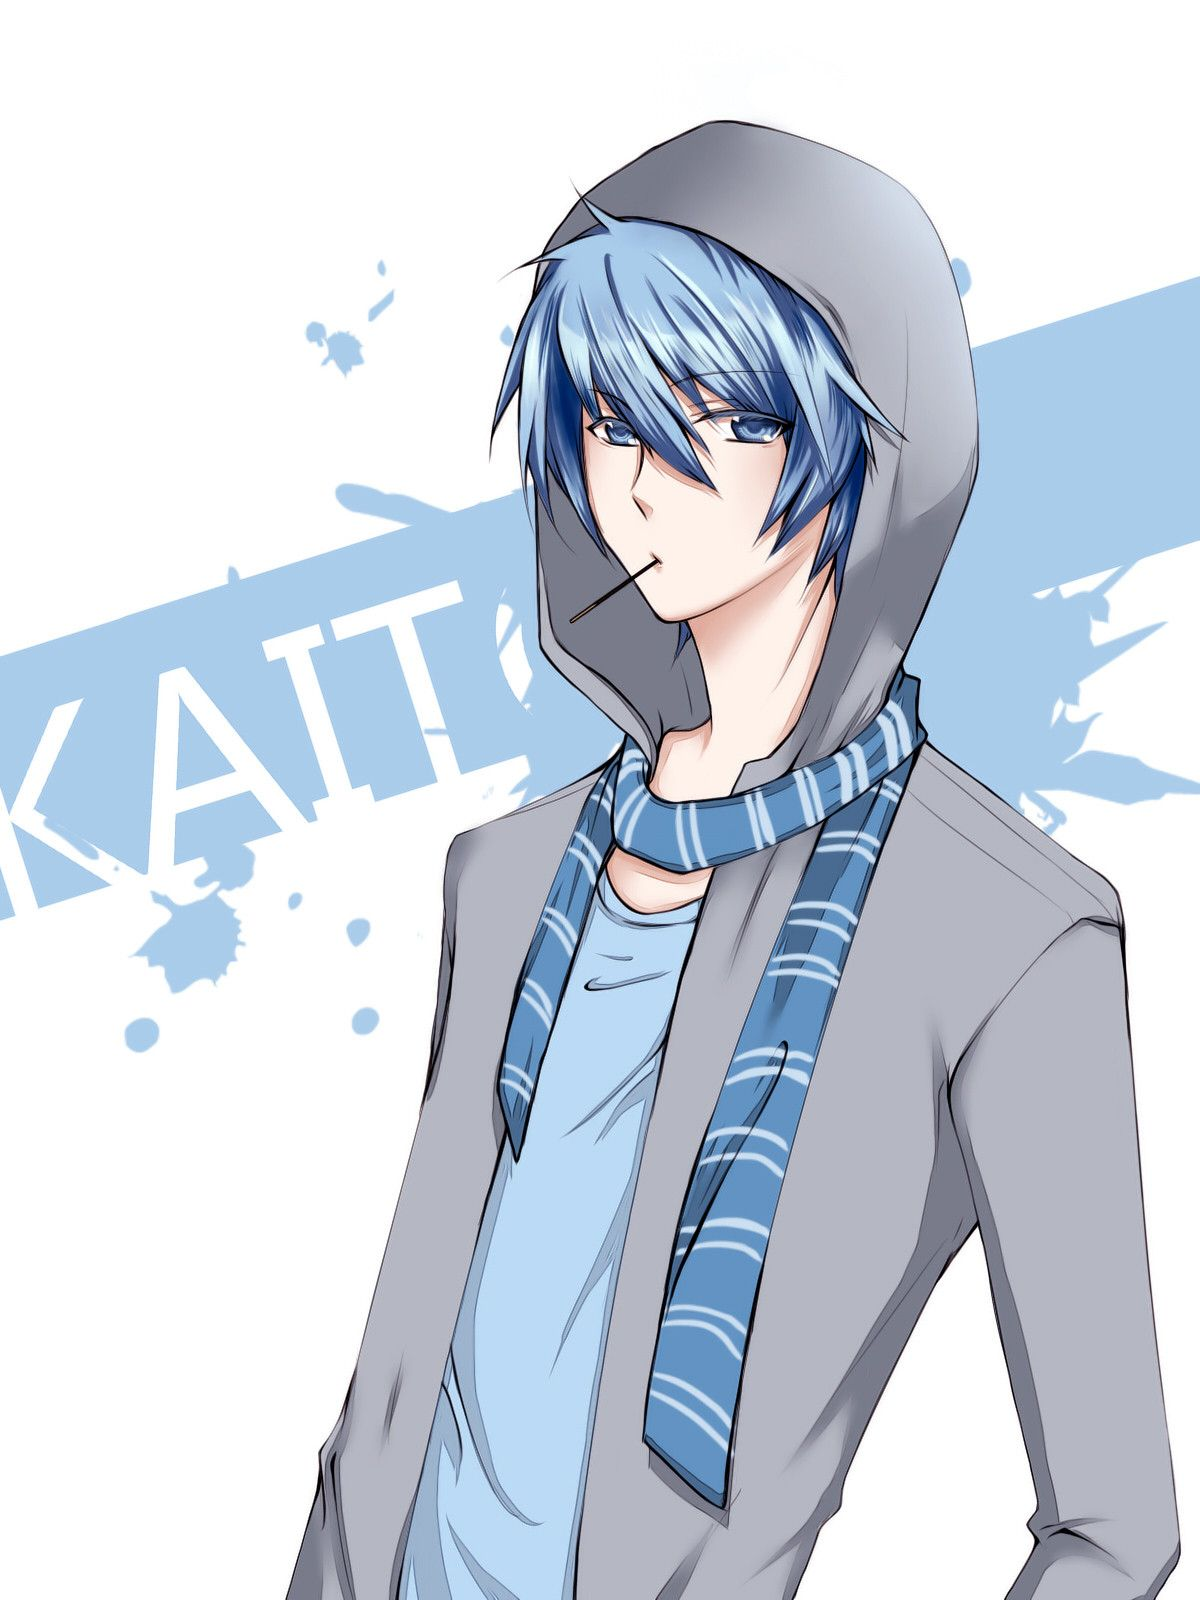 Anime Boy Standing Alone Widescreen 2 Vocaloid Kaito Kaito Shion Vocaloid